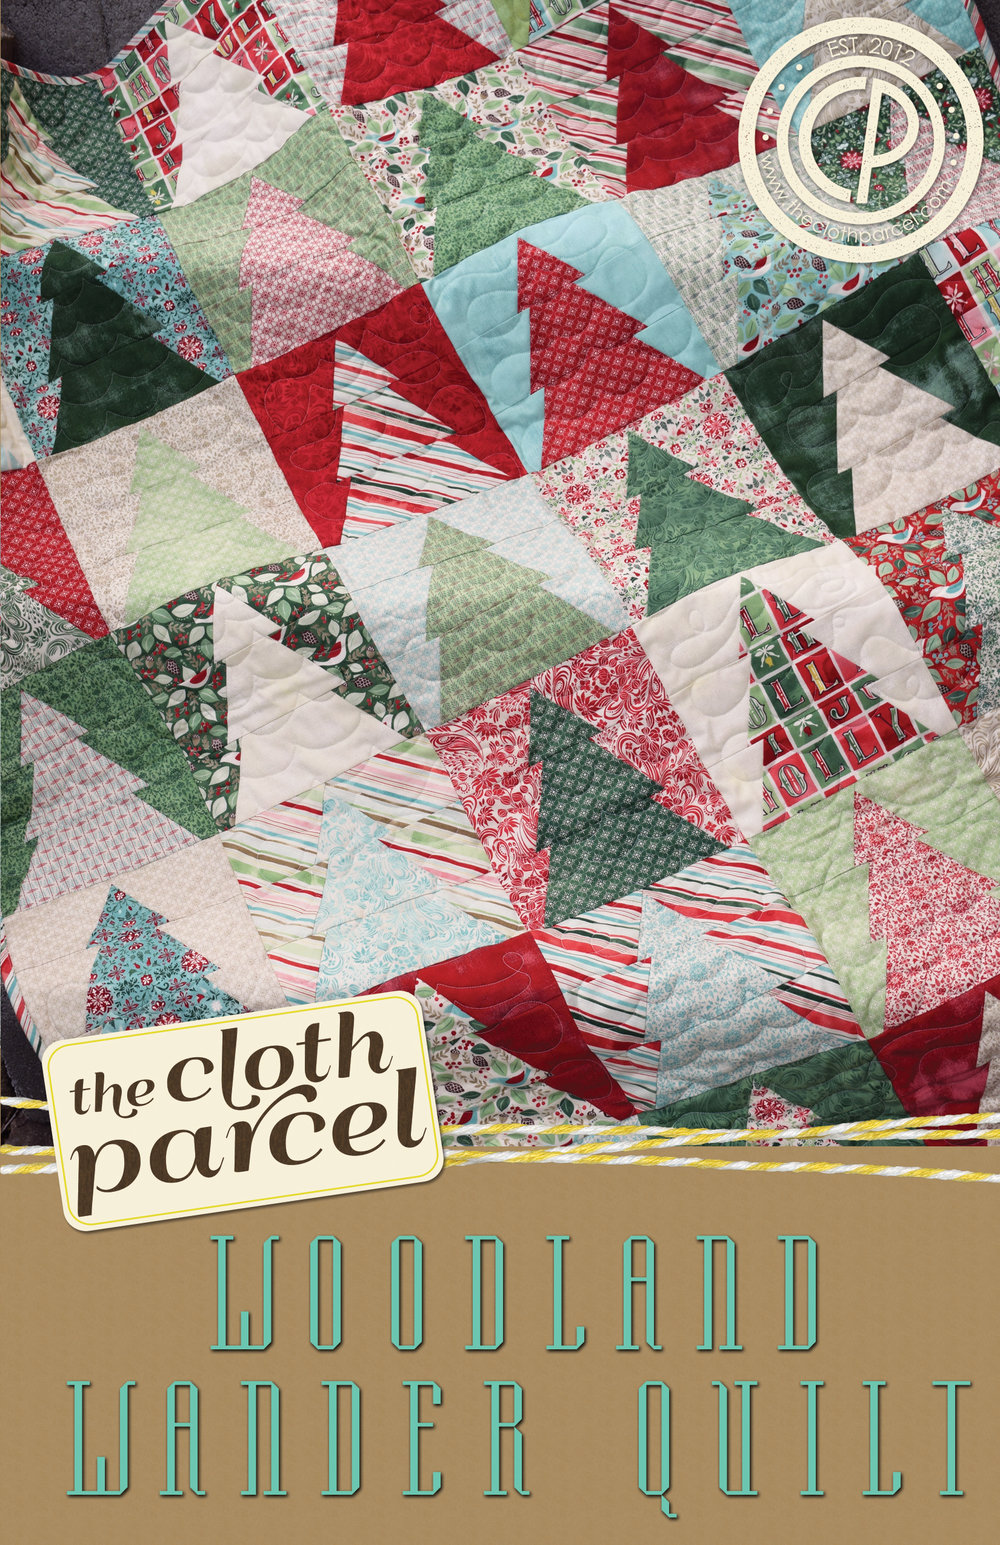 The Cloth Parcel - Woodland Wander Front by Audrey Mann.jpg